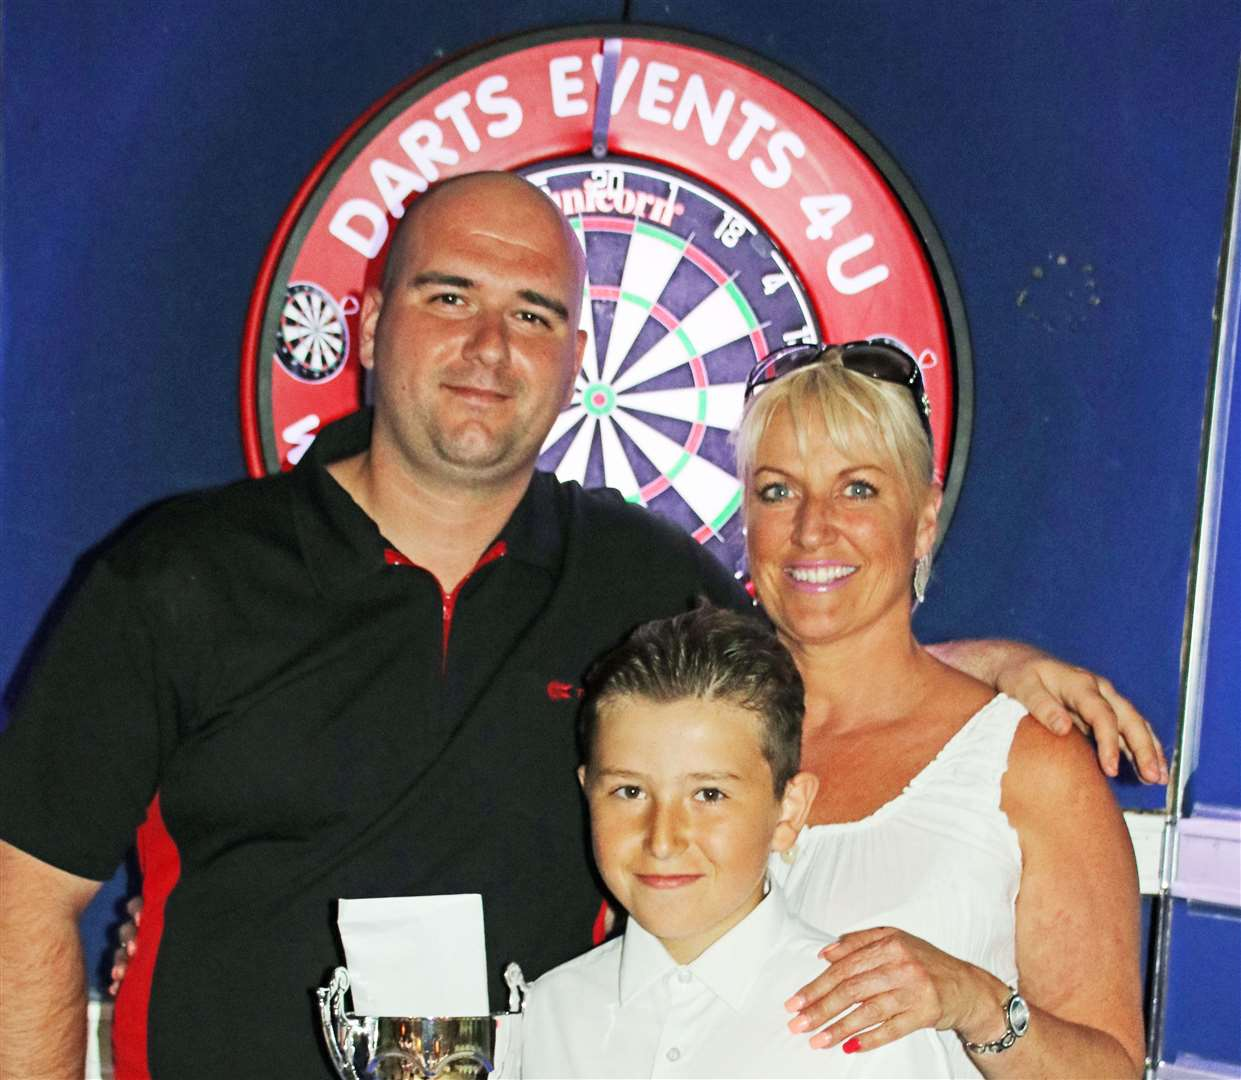 Rob Cross, left, pictured with Merlins Entertainment's Lee Dunn and her nephew Gary after winning the Sheppey Darts Classic in June 2017. Picture: Tony Cox